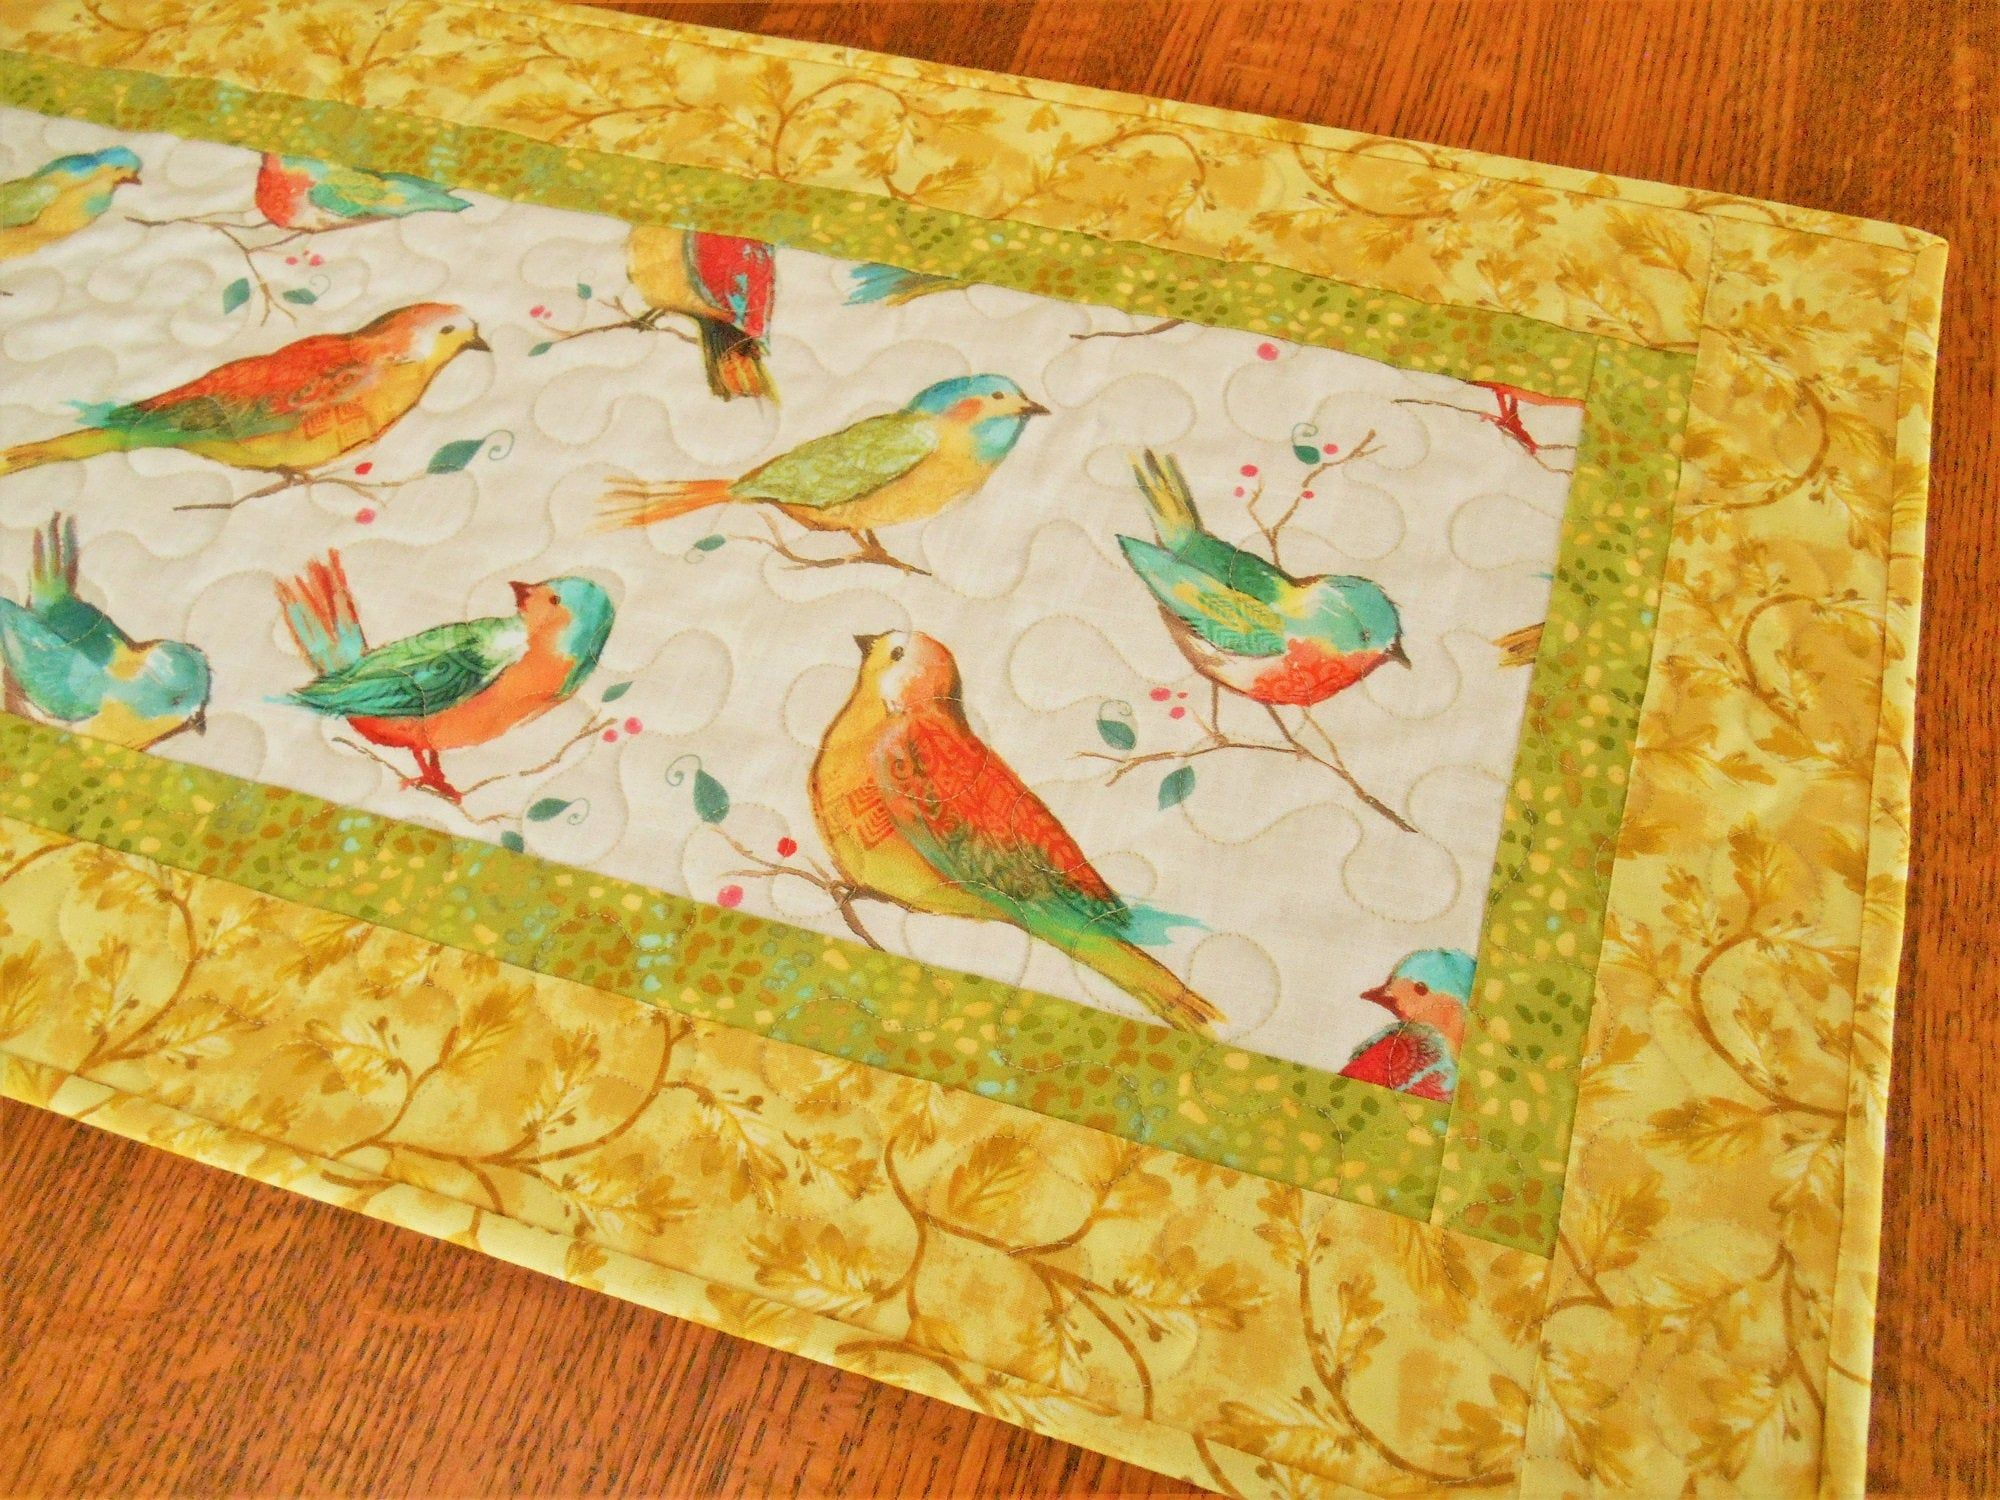 Quilted Table Runner With Birds In Bright Colors Of Yellow In 2020 Quilted Table Runner Quilted Table Runners Table Runners